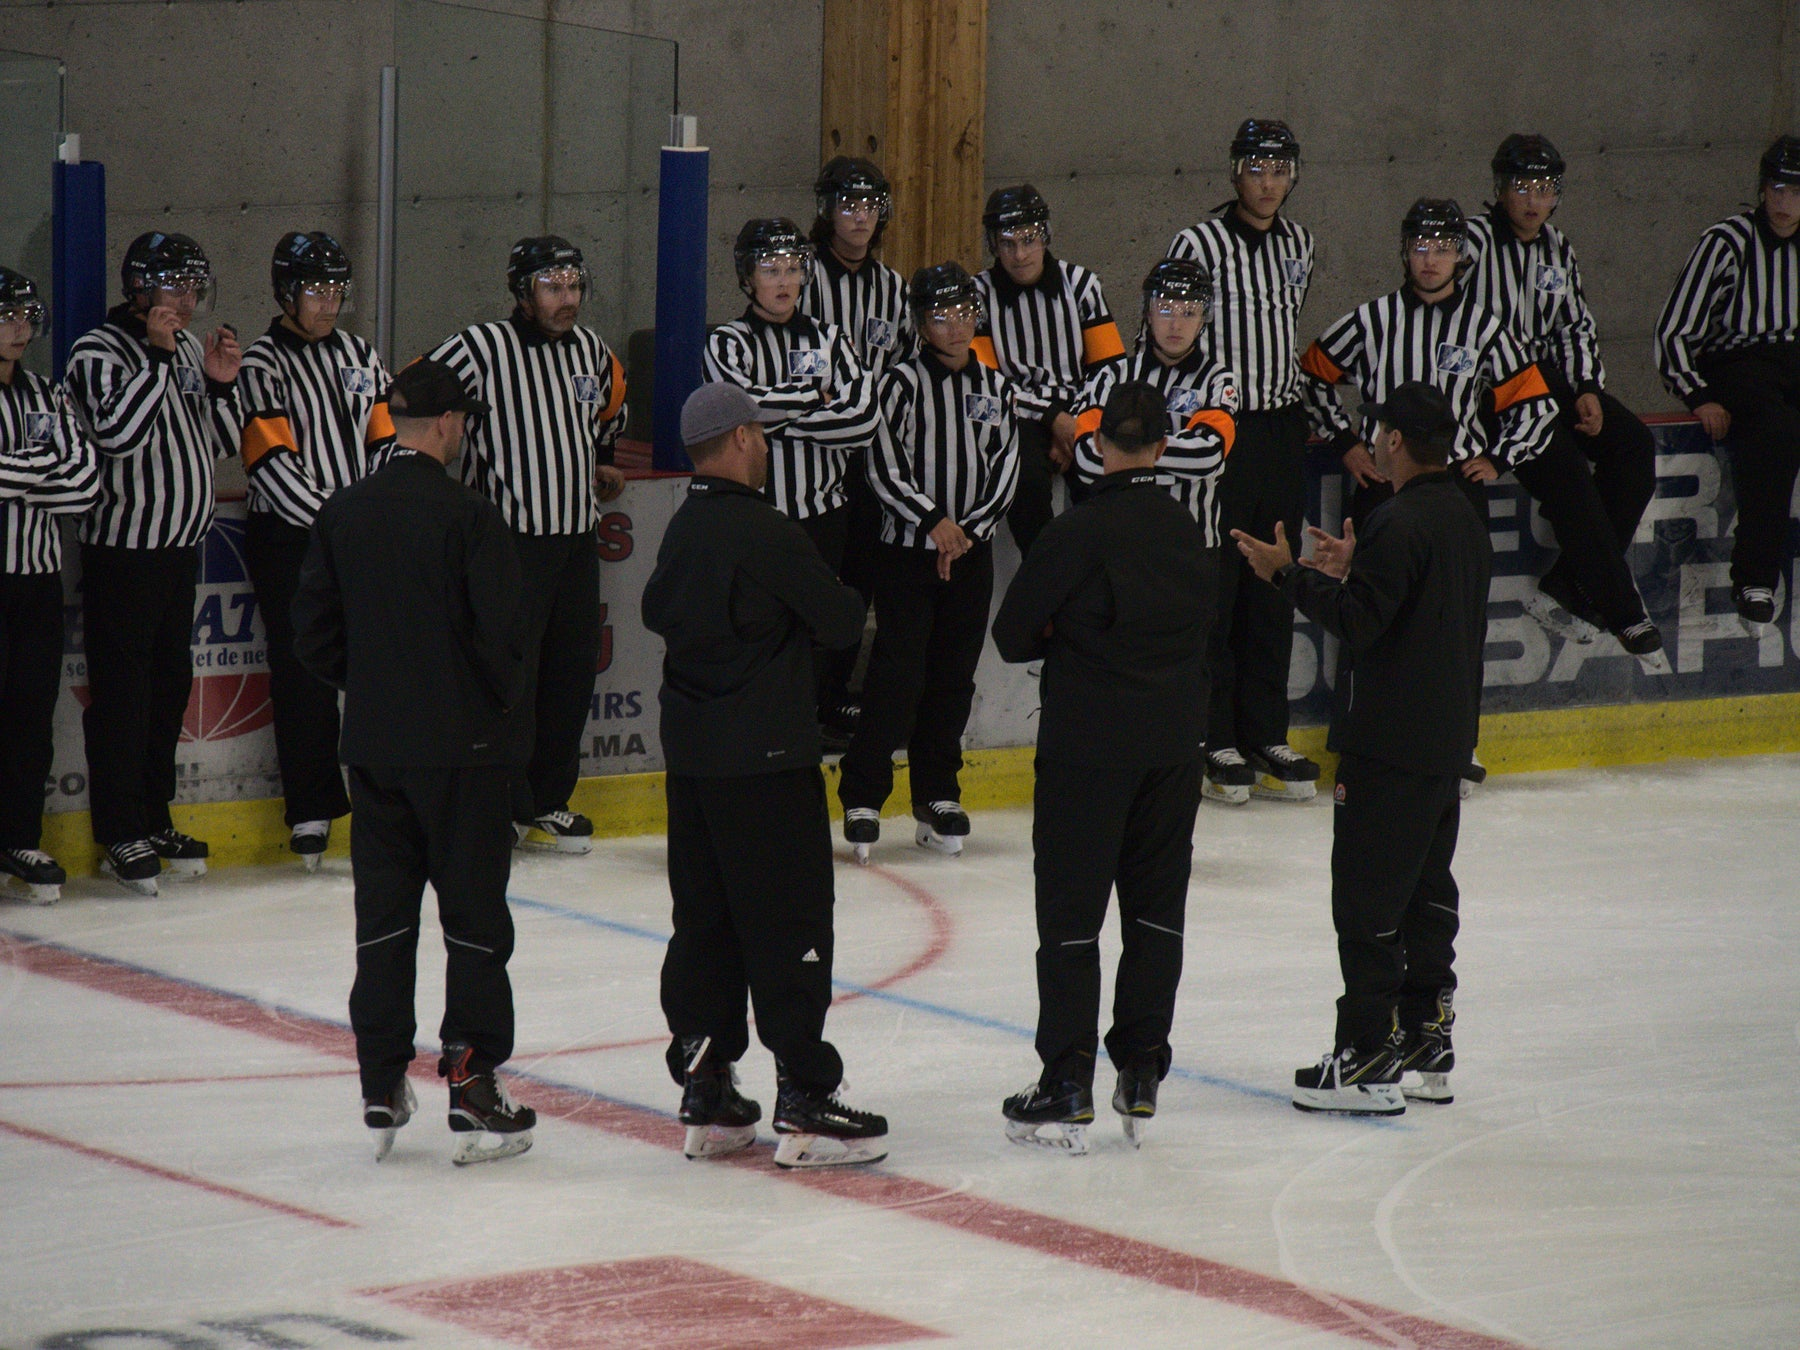 Justin-st-pierre-teaching-to-beginner-referees